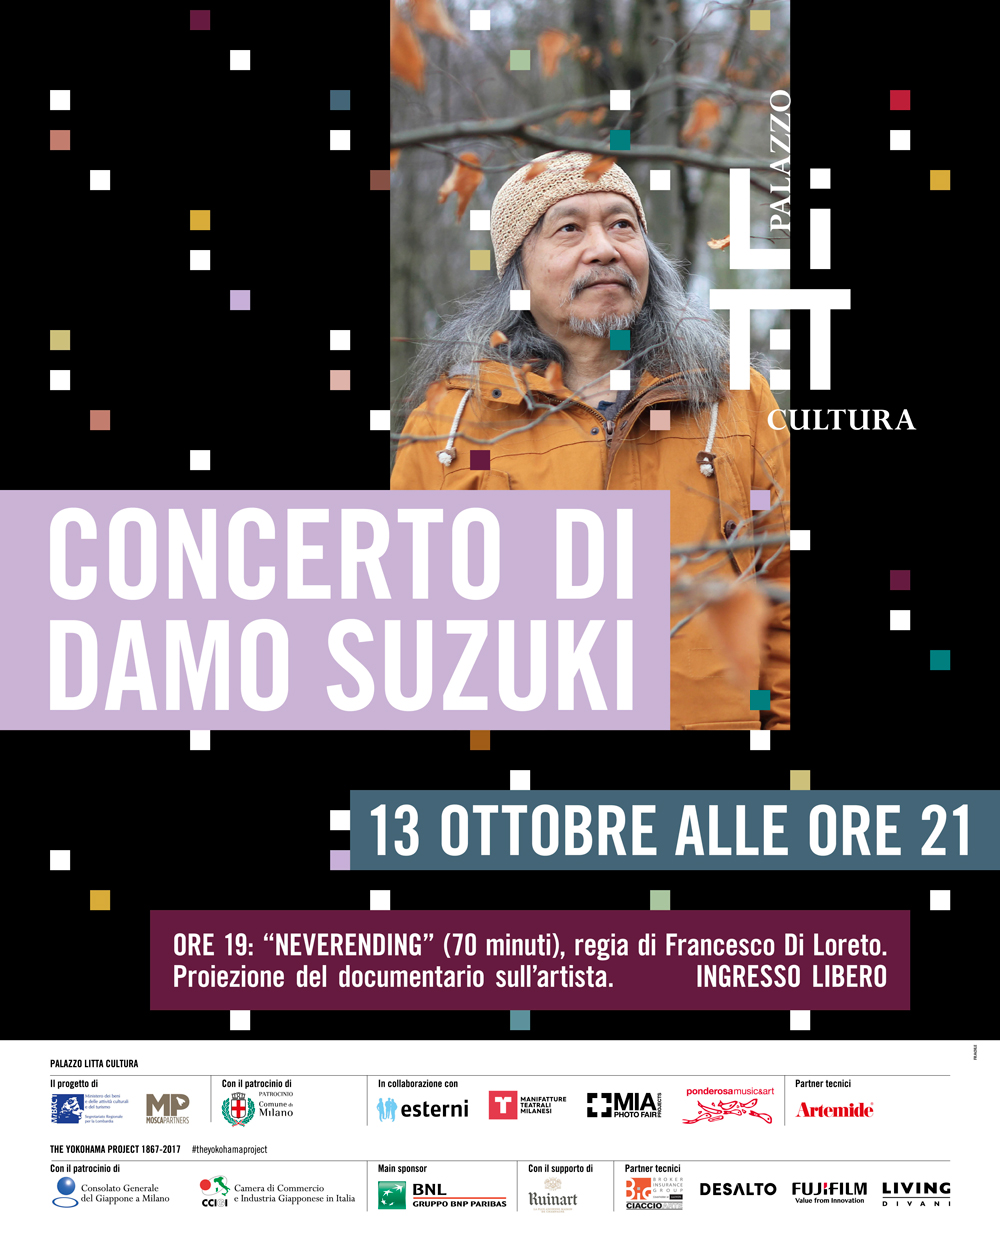 Concert By Damo Suzuki And Neverending Projection